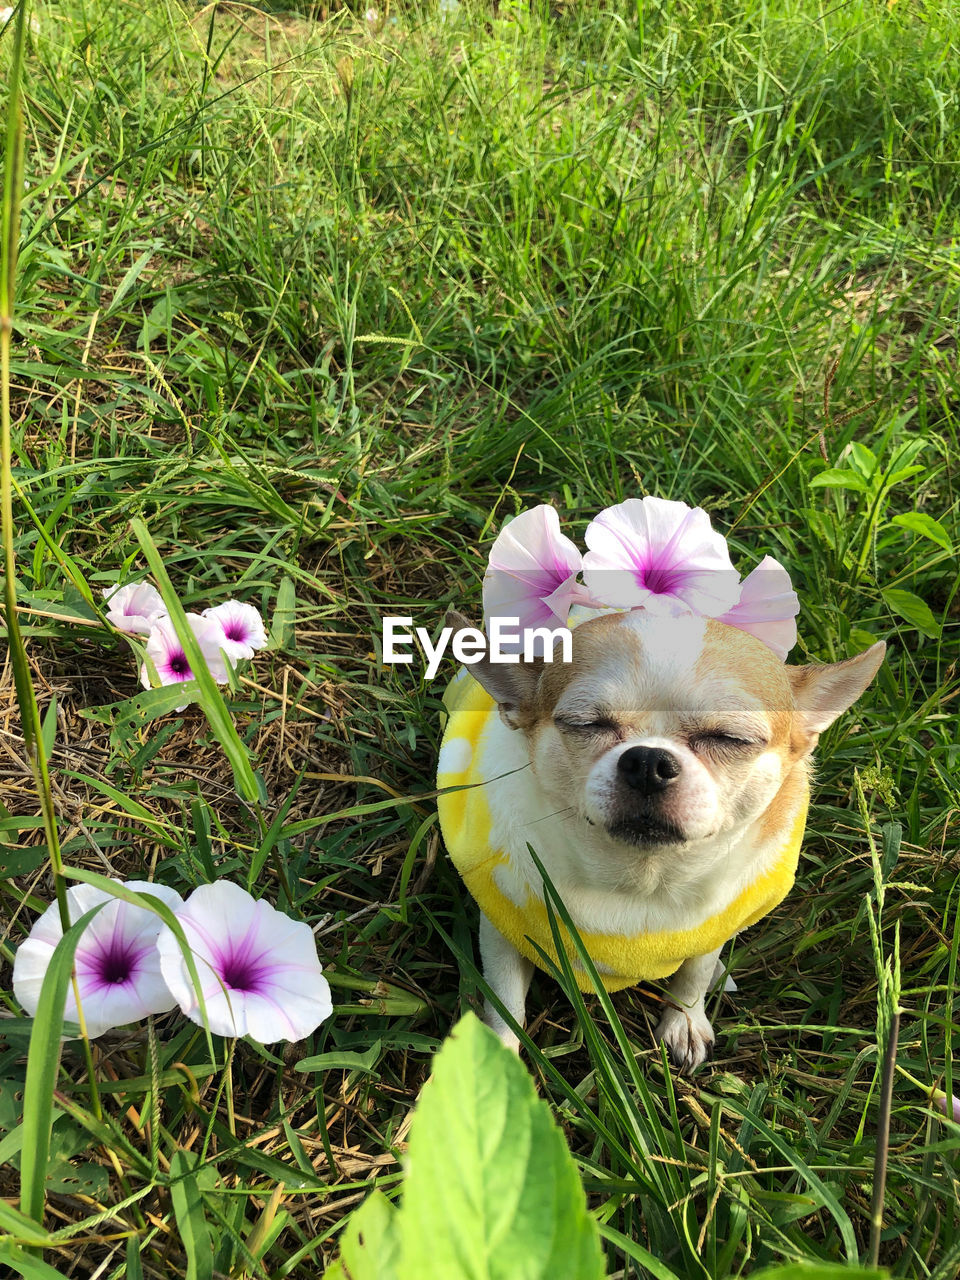 VIEW OF A DOG LOOKING AT FLOWER